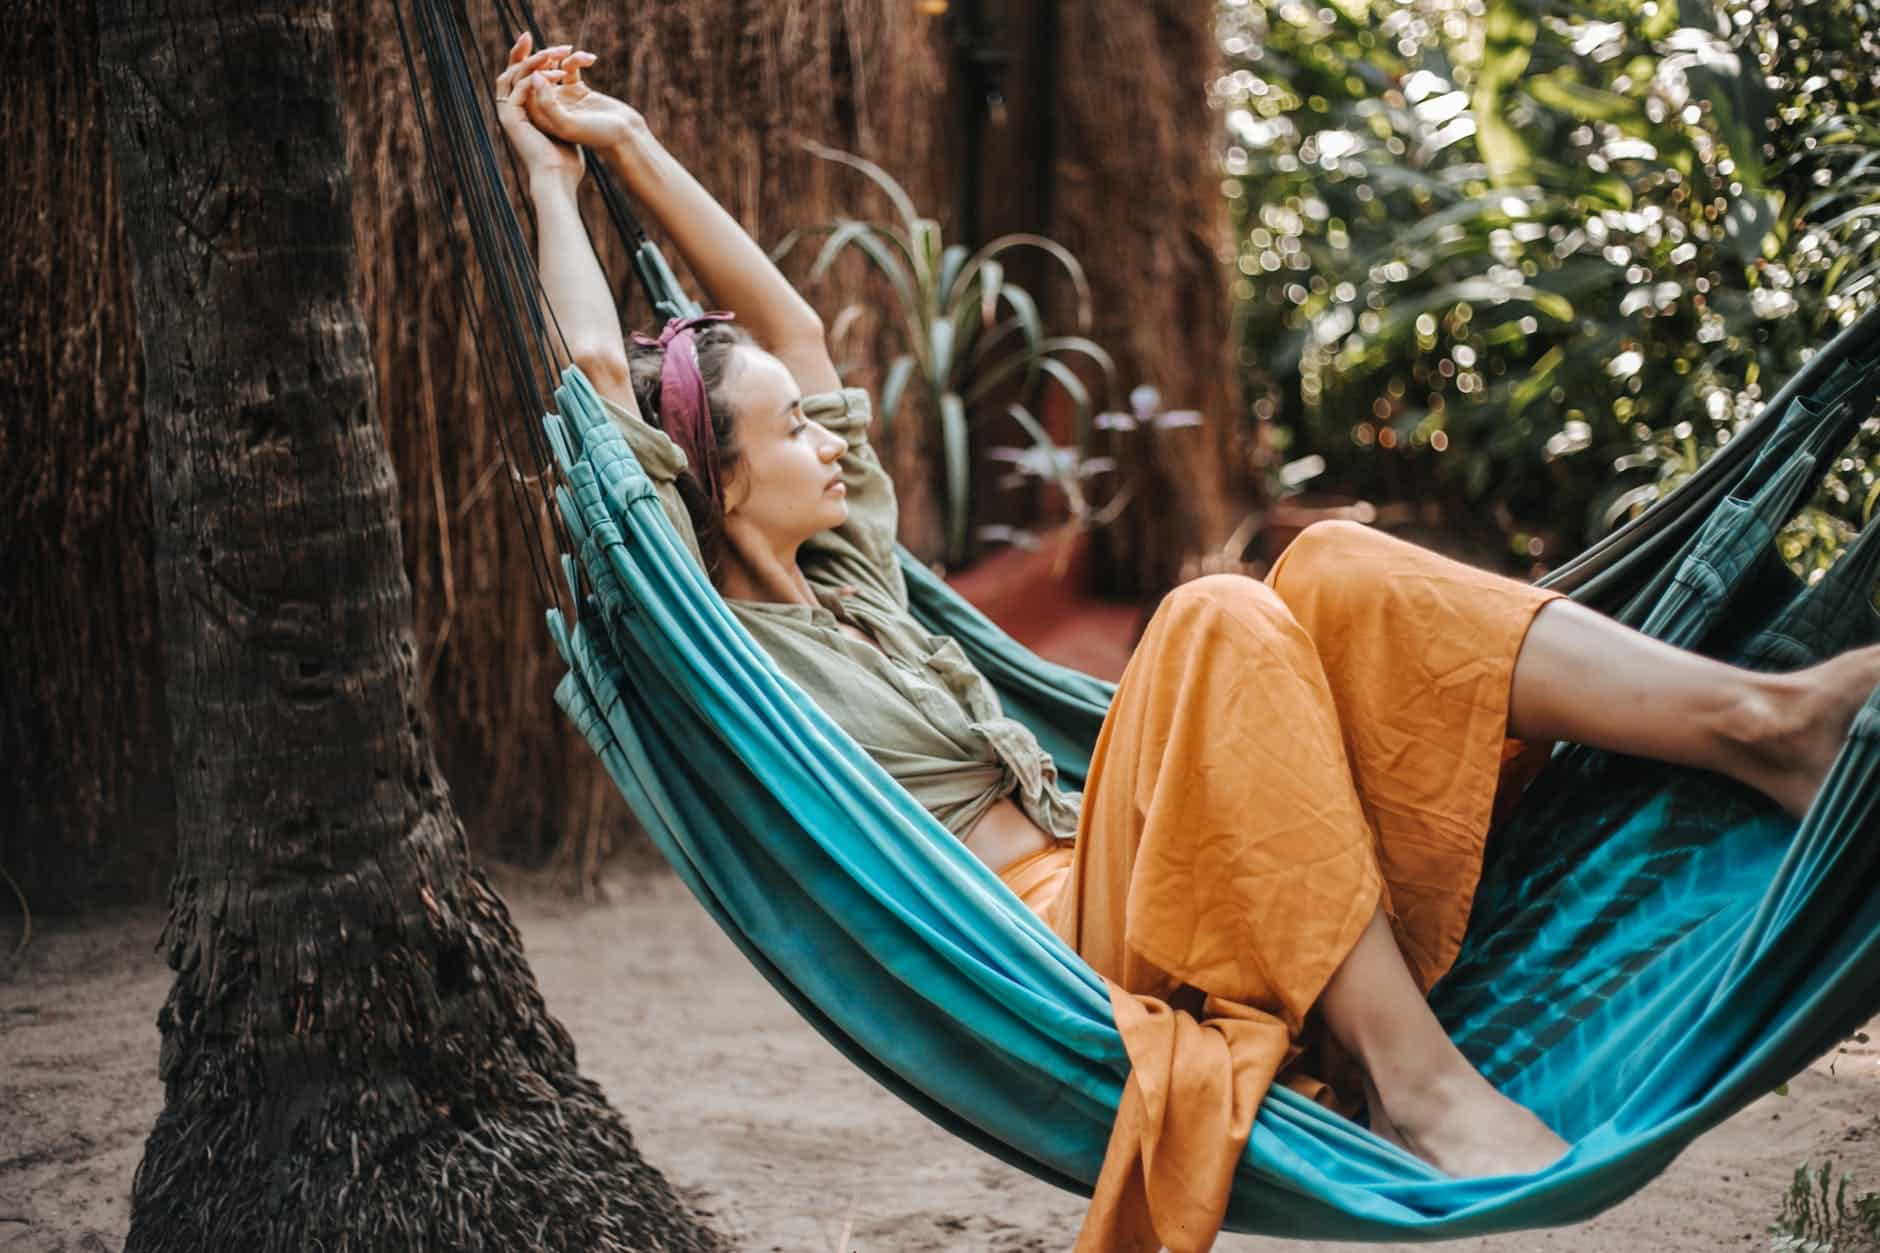 a woman lying on a hammock and resting